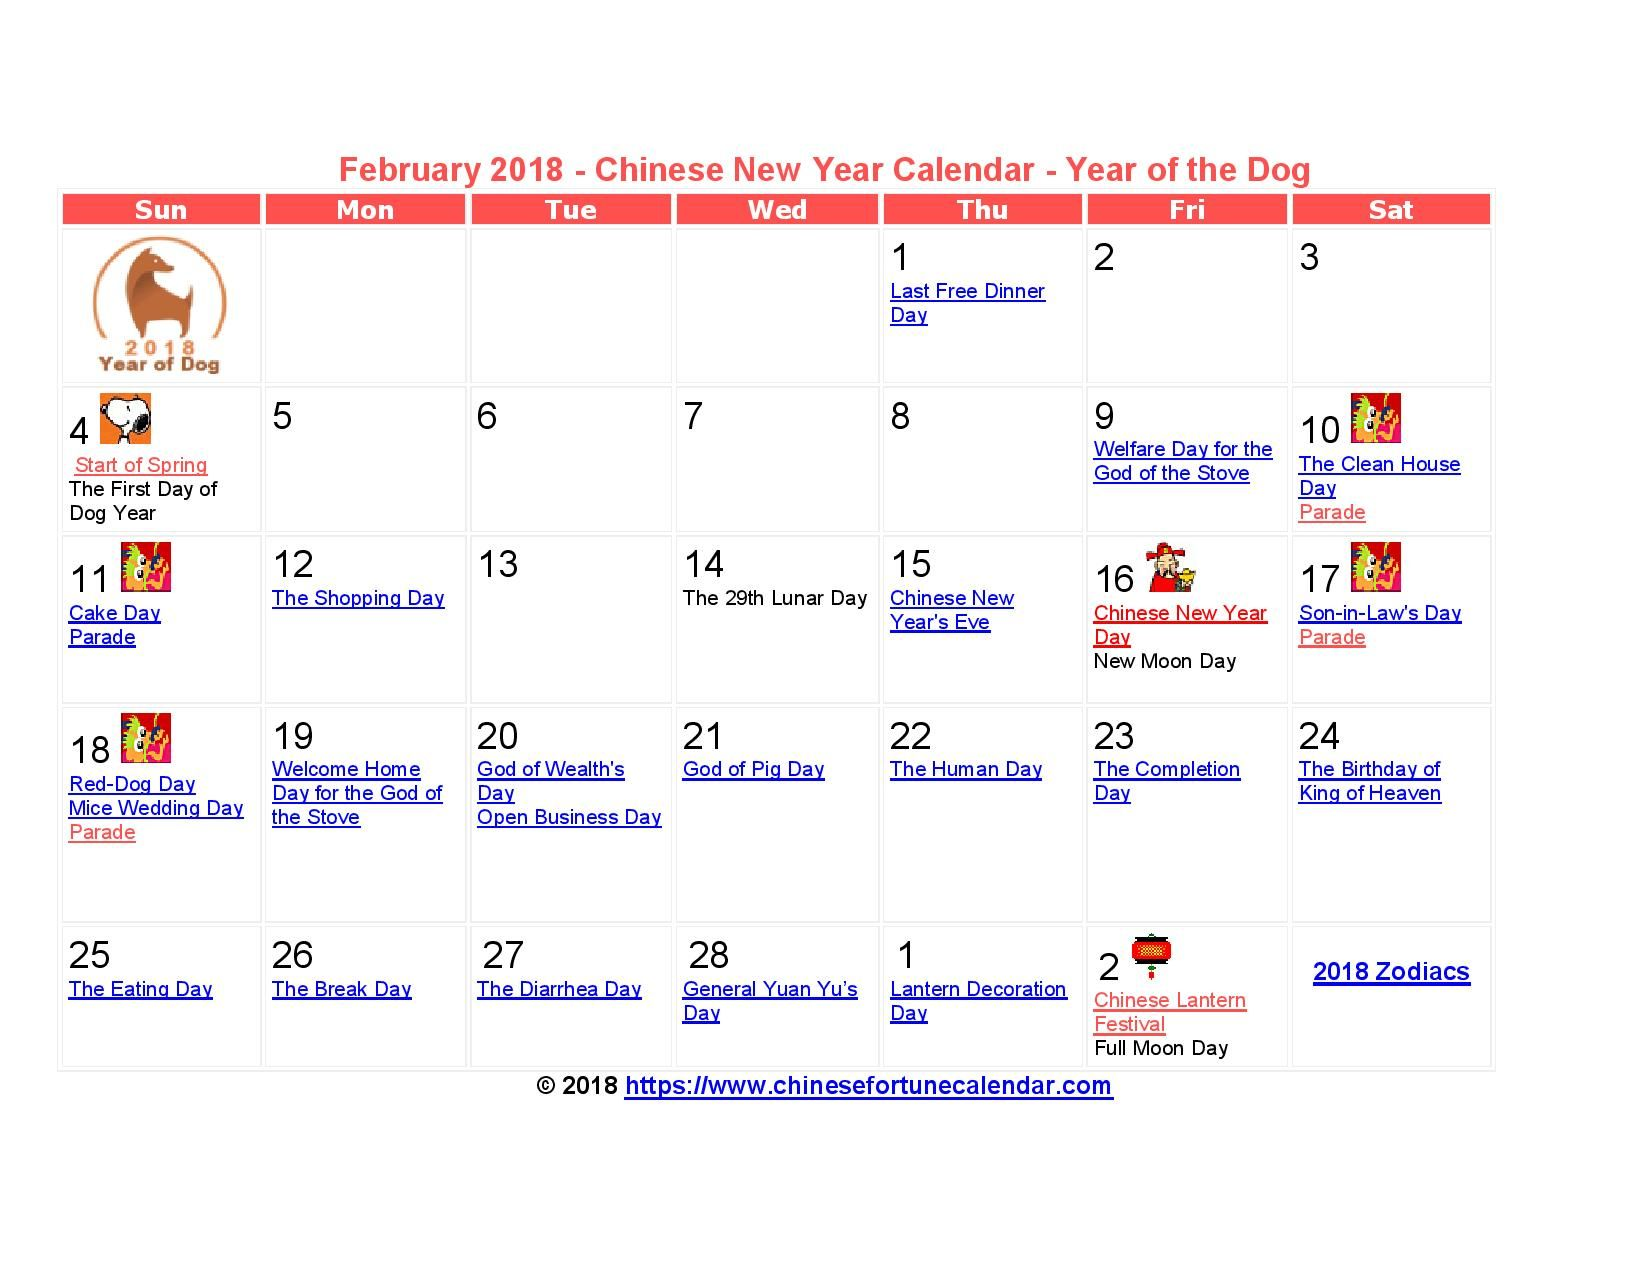 2018 February Calendar for Chinese New Year Day February